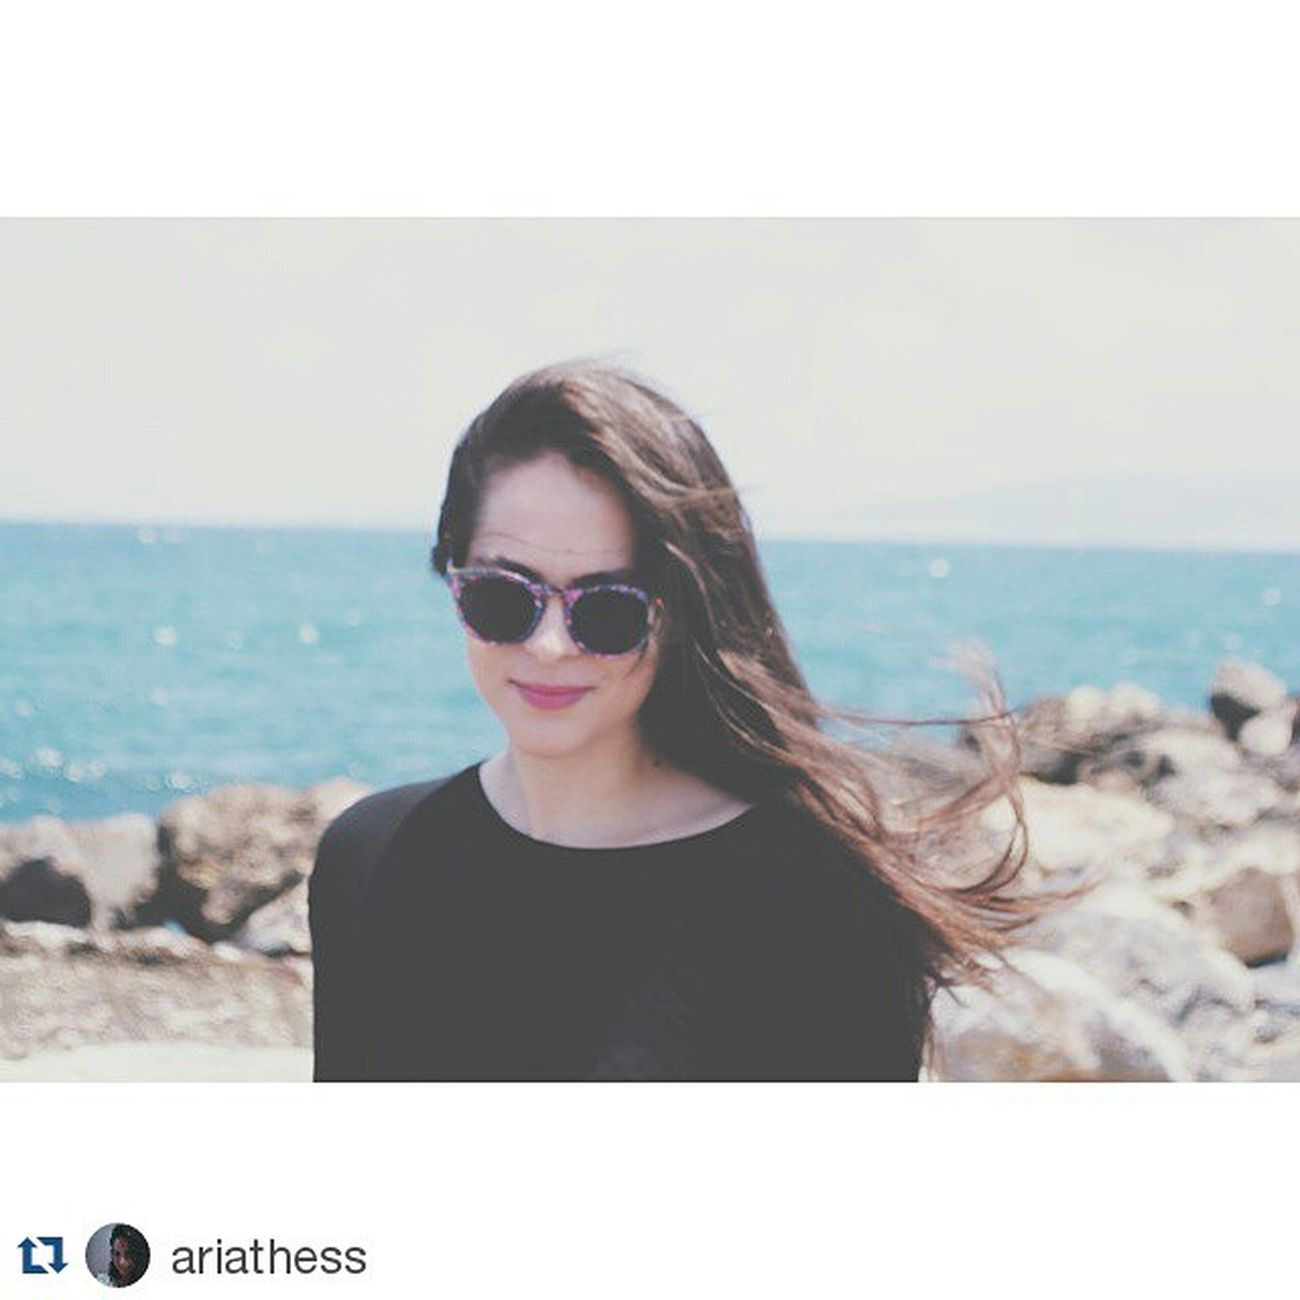 Girl Sea Sun Fiogos original My_beautiful_friends Repost @ariathess ・・・